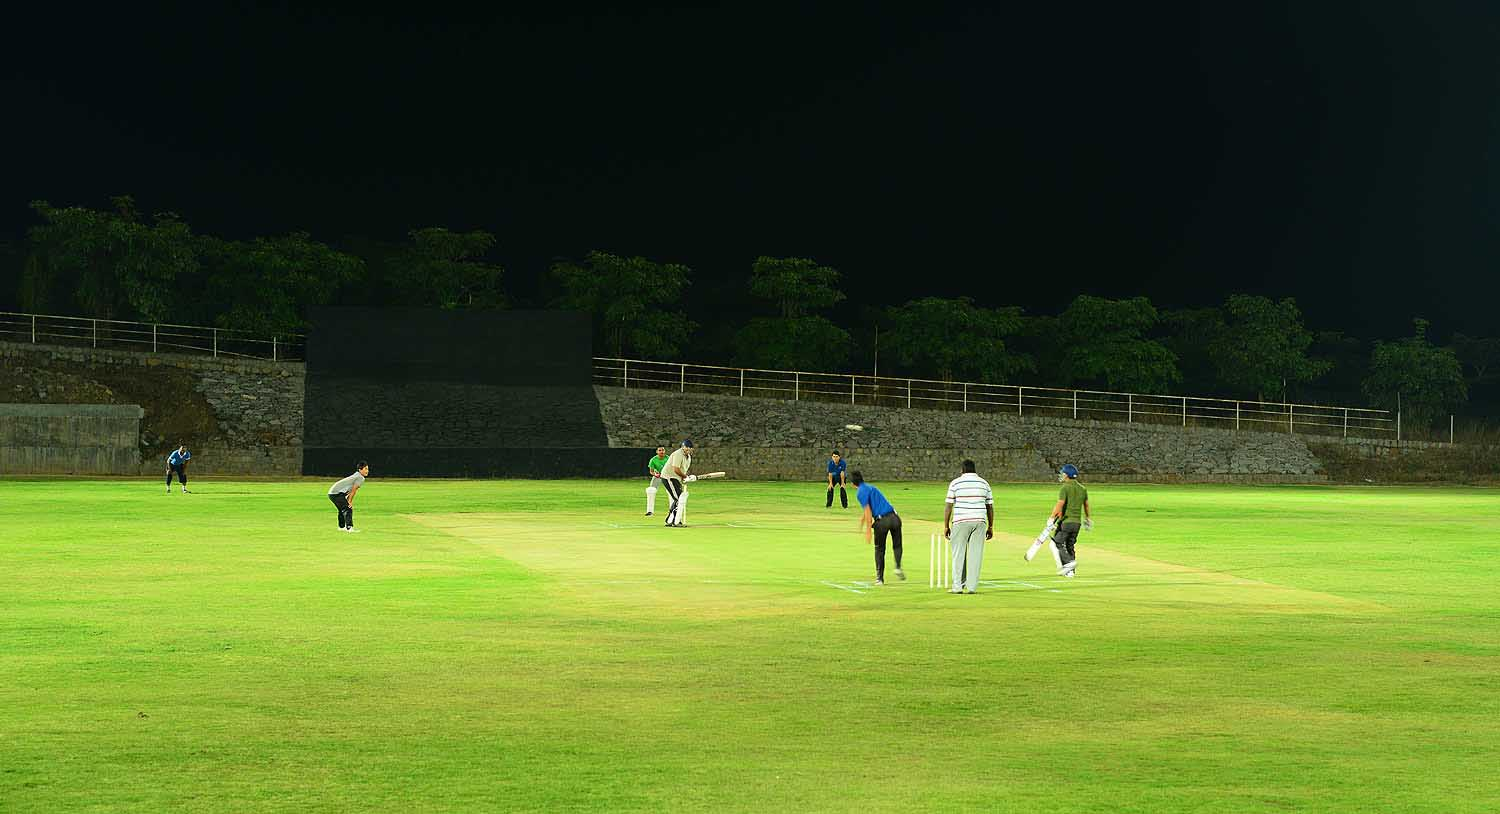 Cricket-stadium